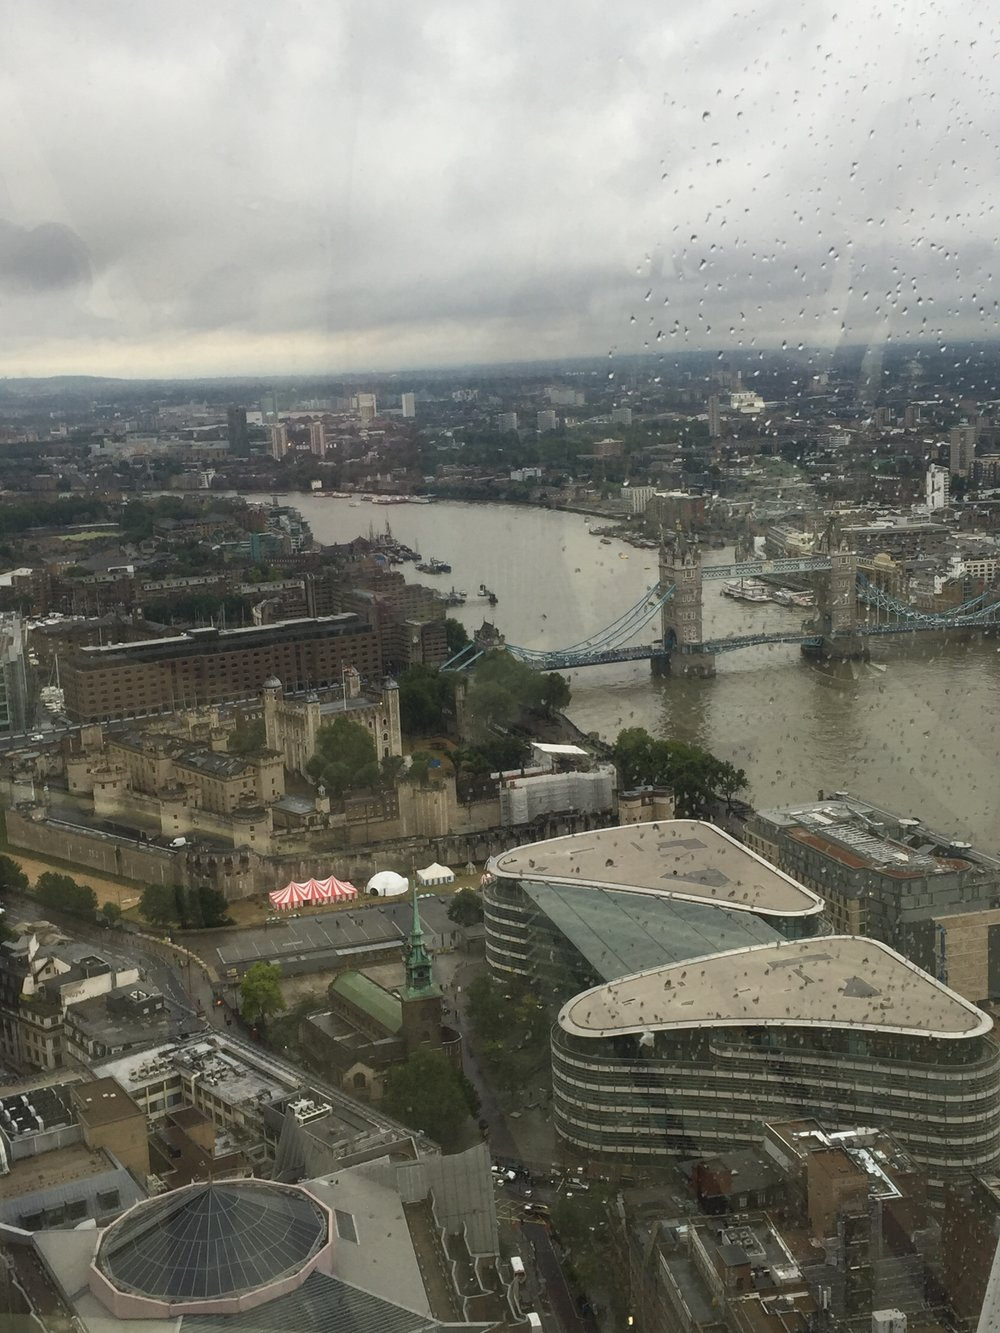 View from SkyGarden